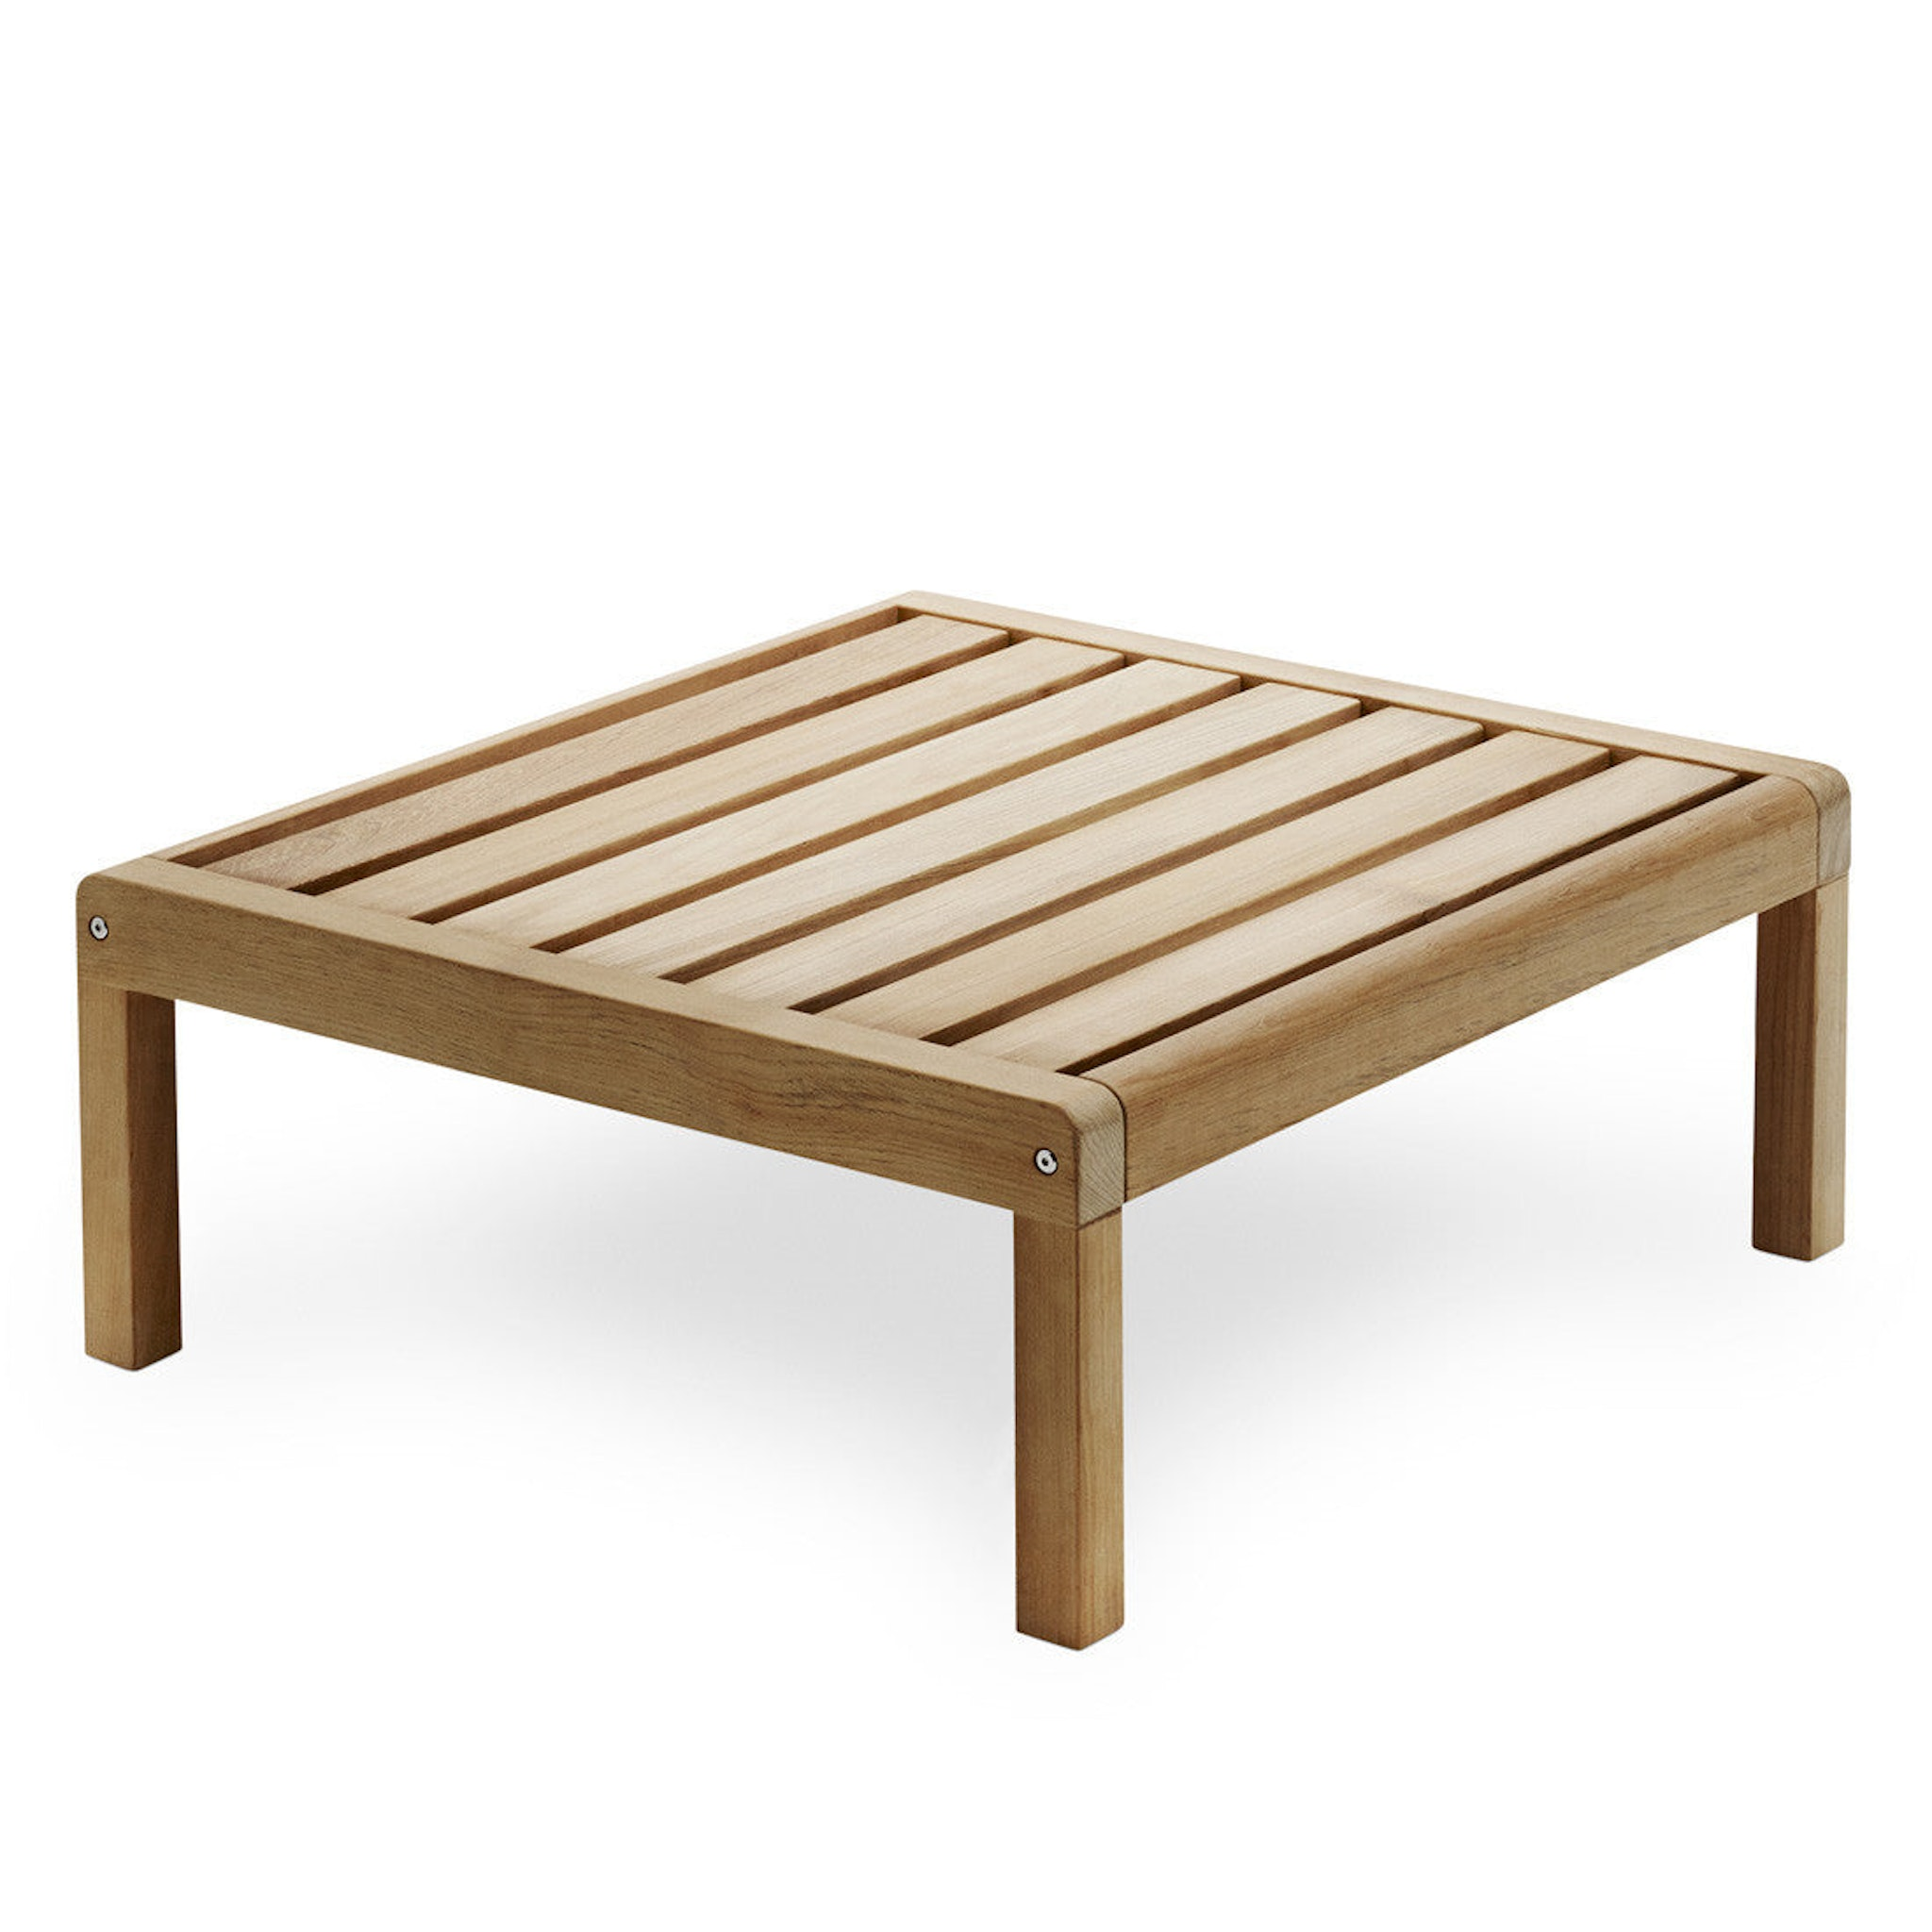 Virkelyst Table by Skagerak